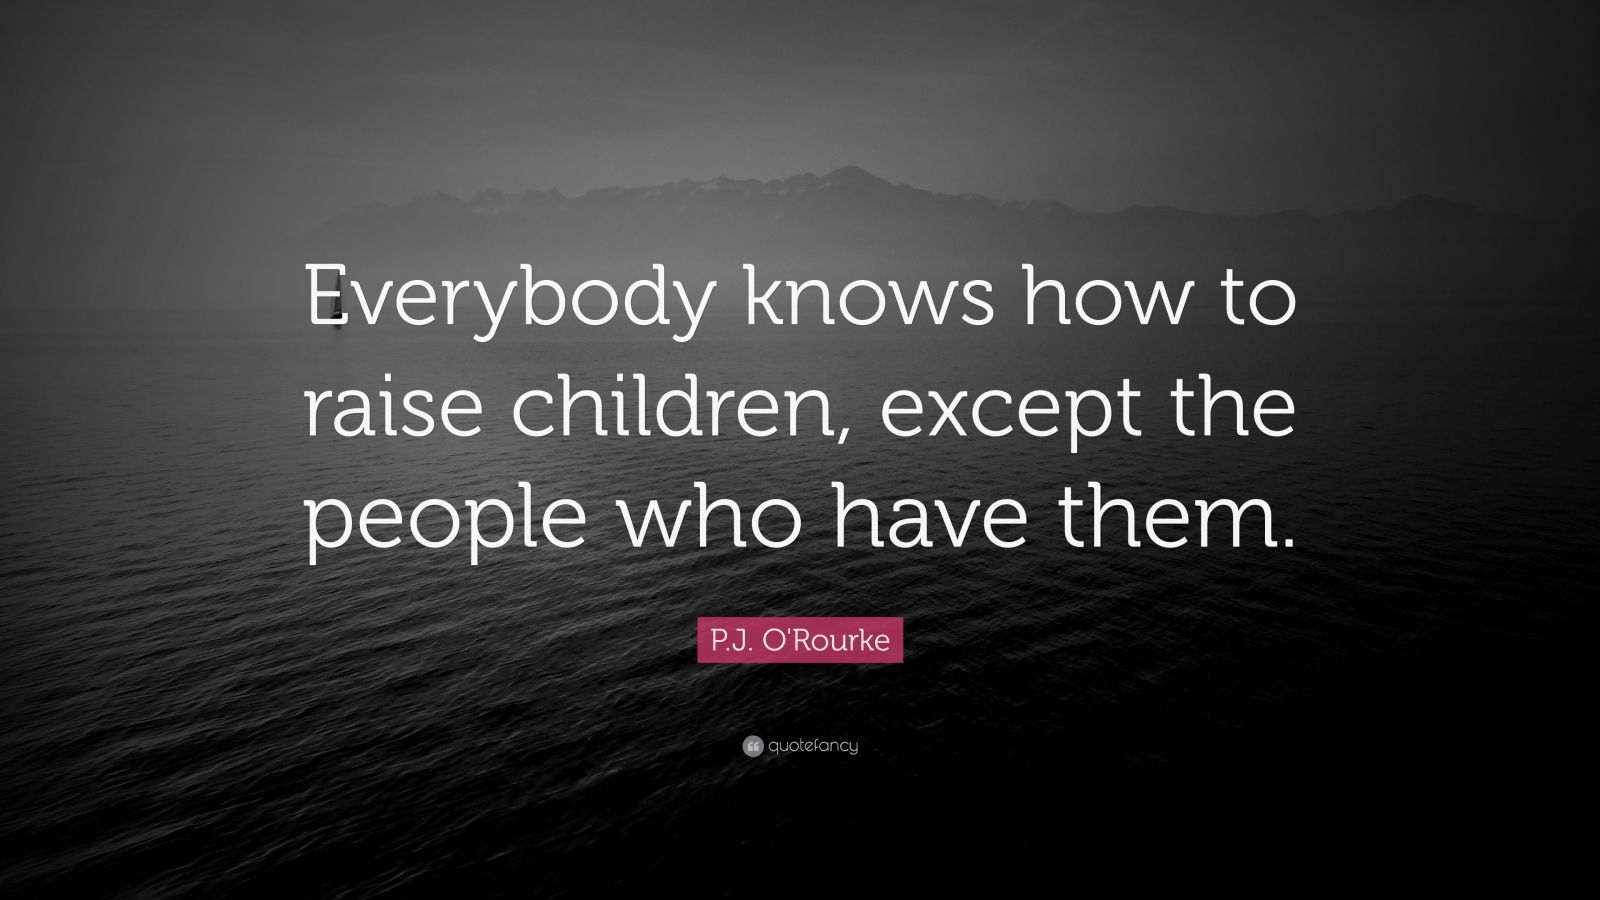 """P.J. O'Rourke Quote: """"Everybody knows how to raise children, except the people who have them."""""""